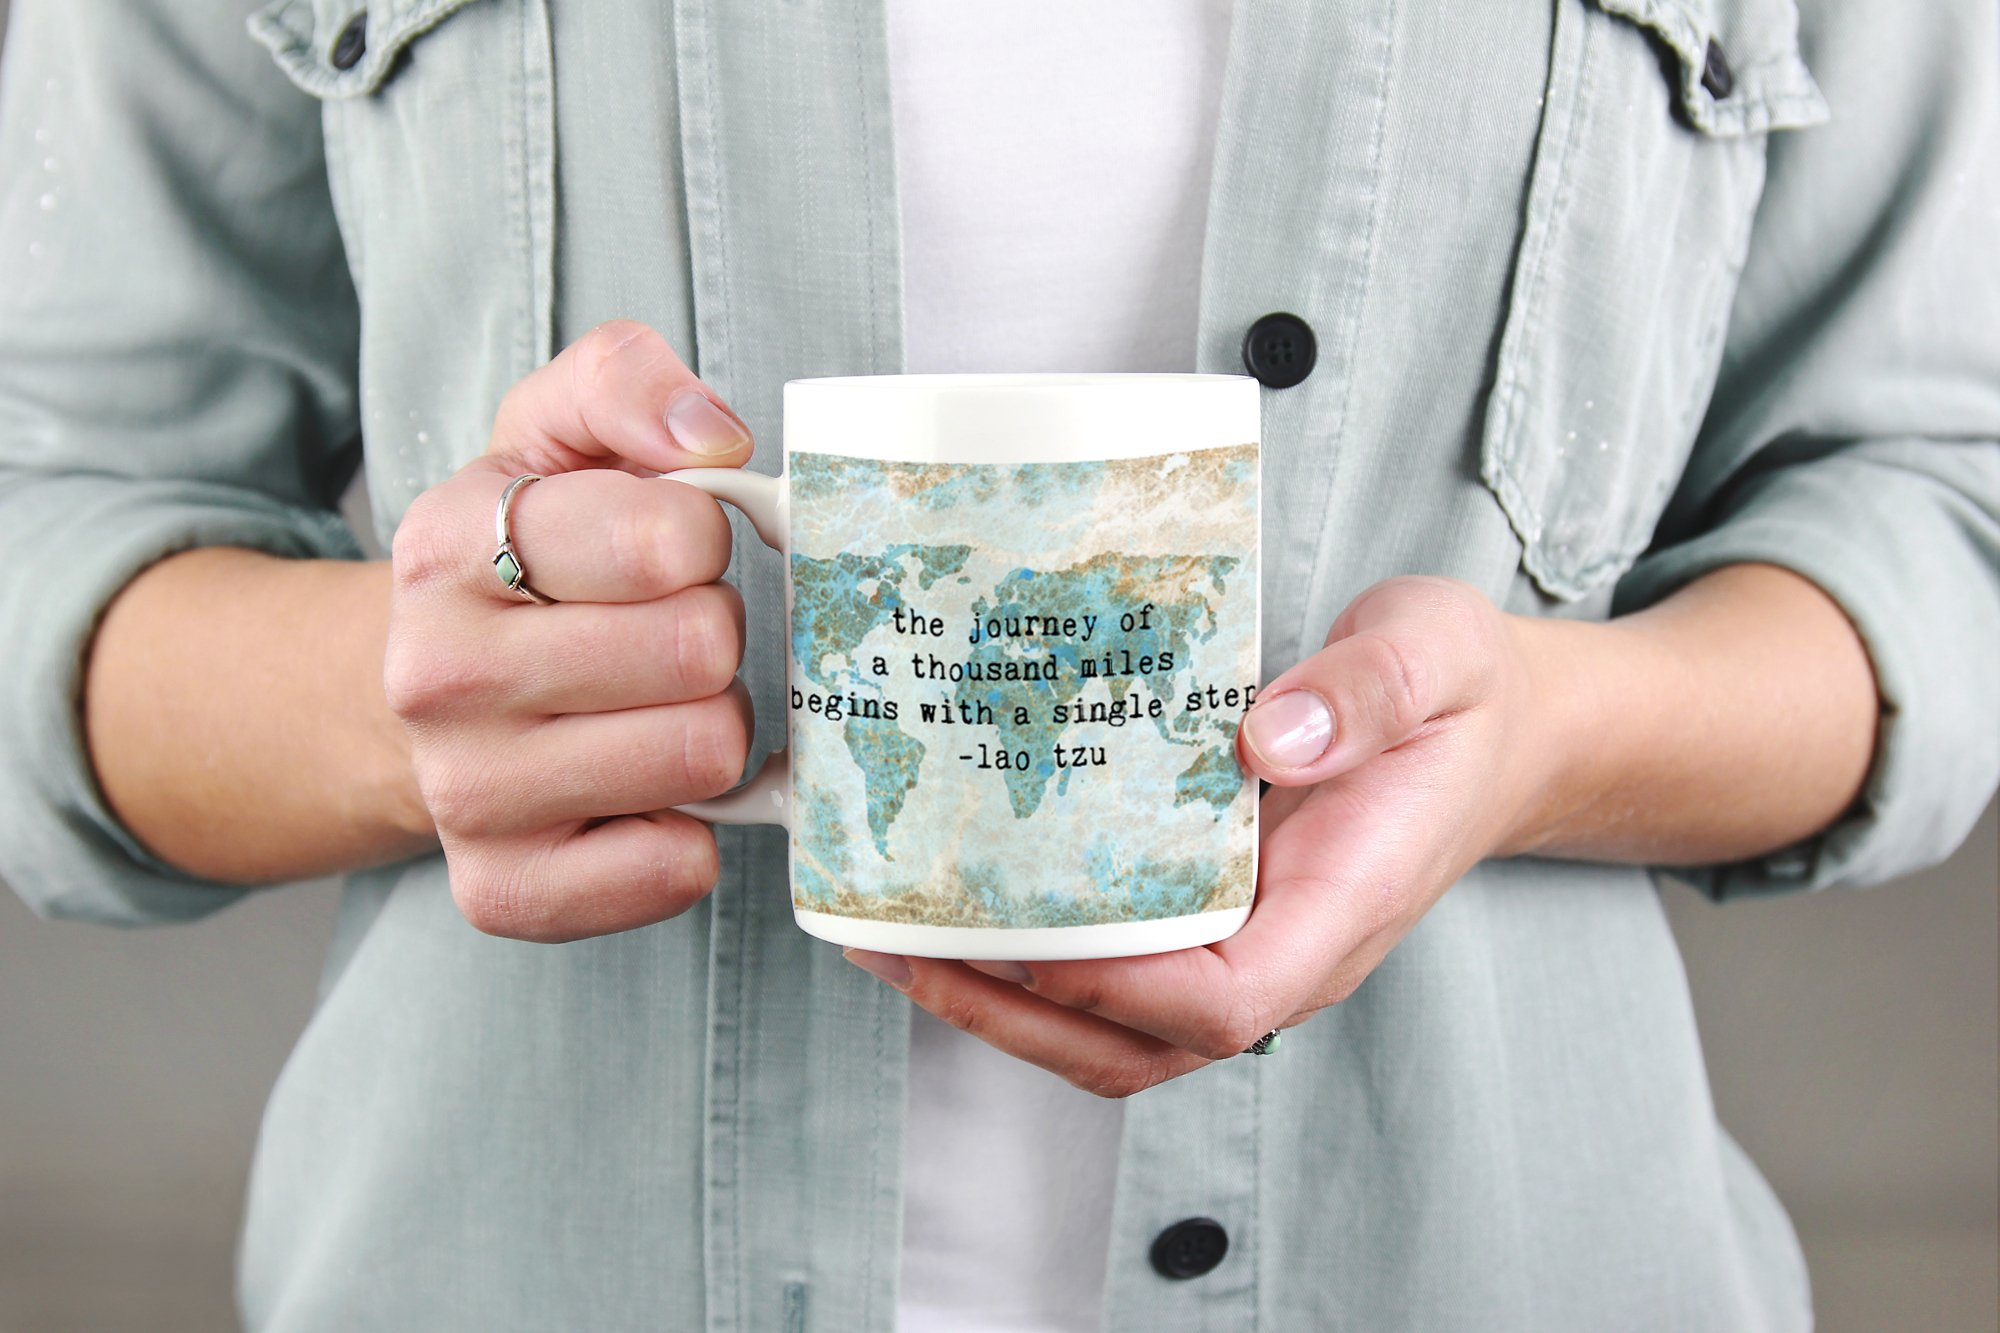 The Journey of a Thousand Miles Begins with a Single Step World Map Coffee Mug Travel Quote 15 oz Mug by Paintspiration (Image #2)